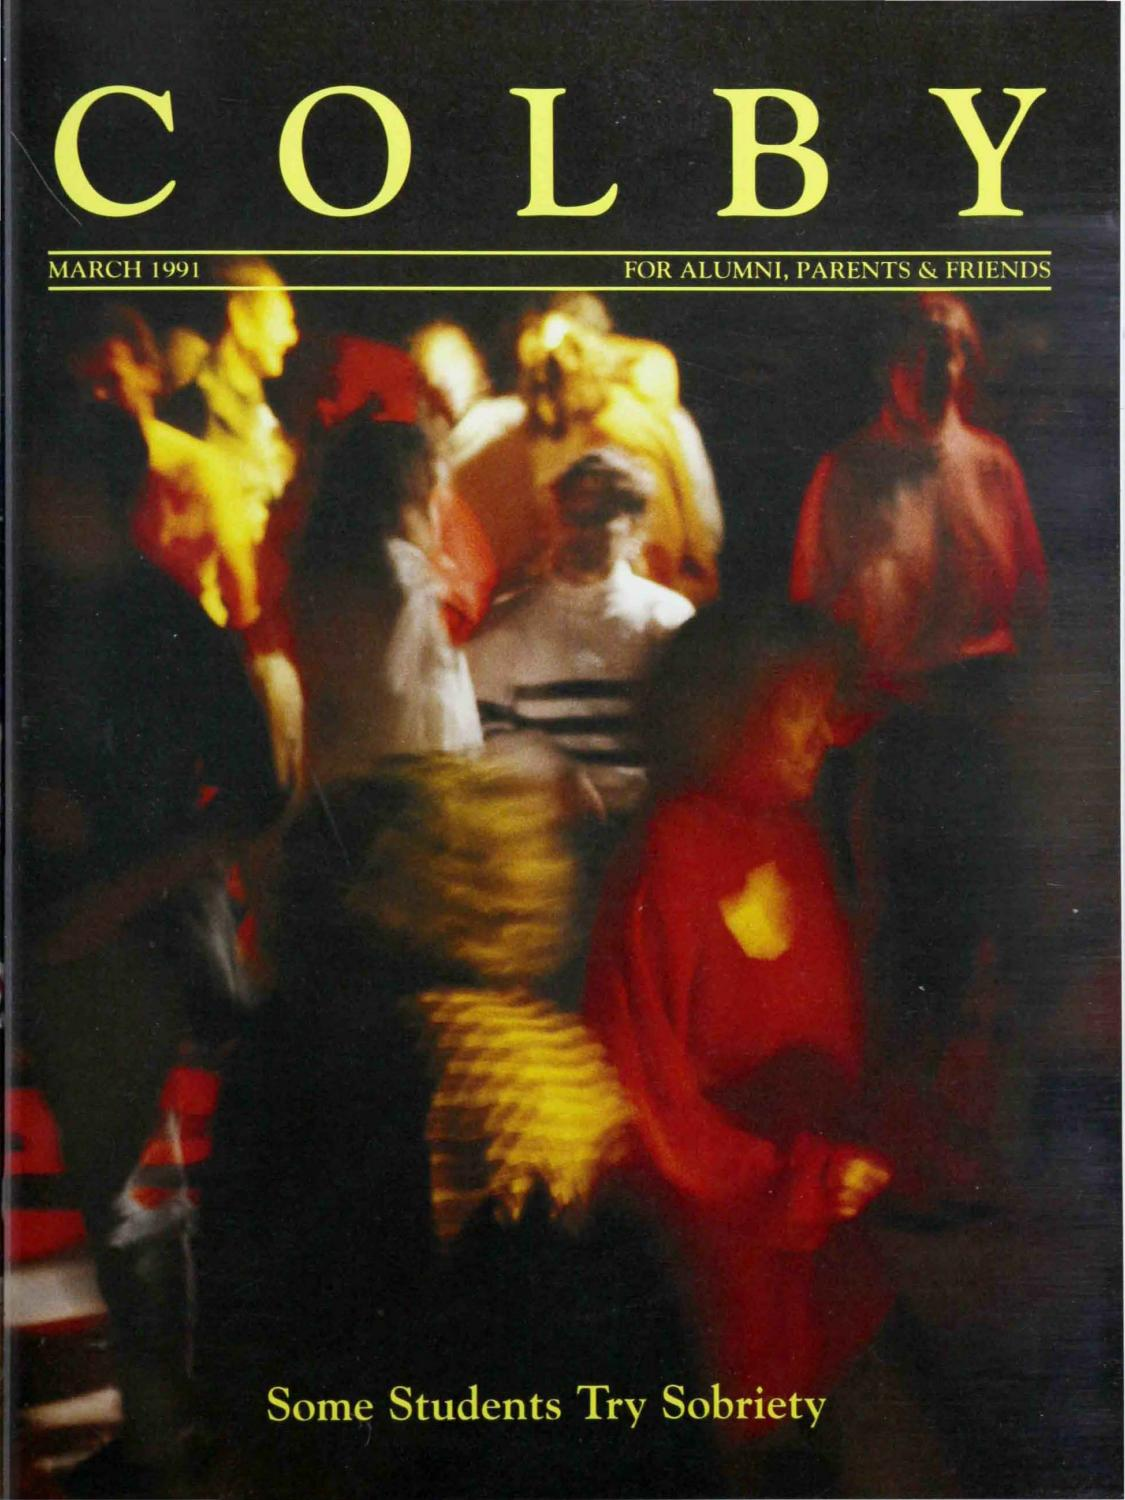 Colby magazine vol. 83, no. 2 by colby college libraries   issuu